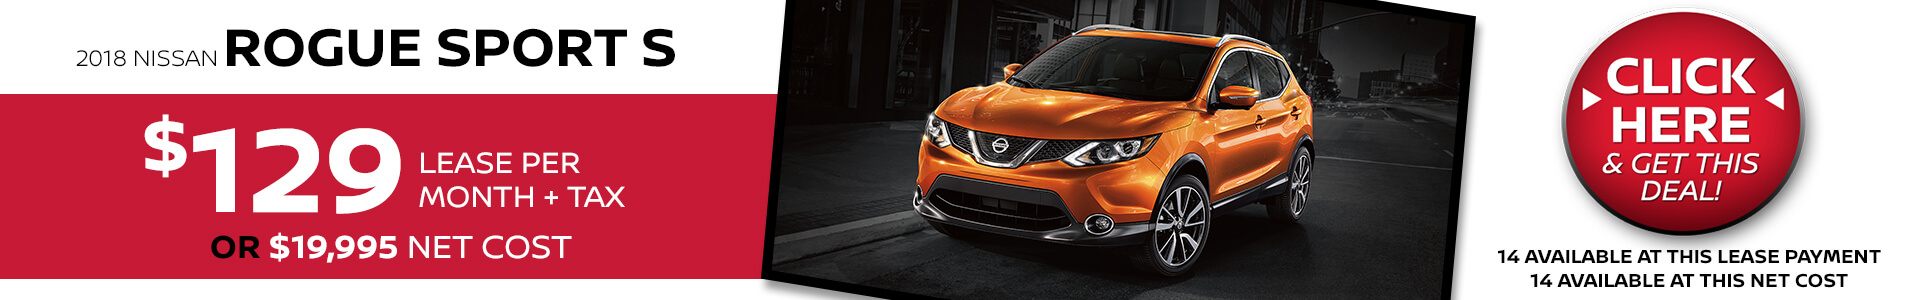 Special Deals And Prices Offered On The Mossy Nissan Homepage